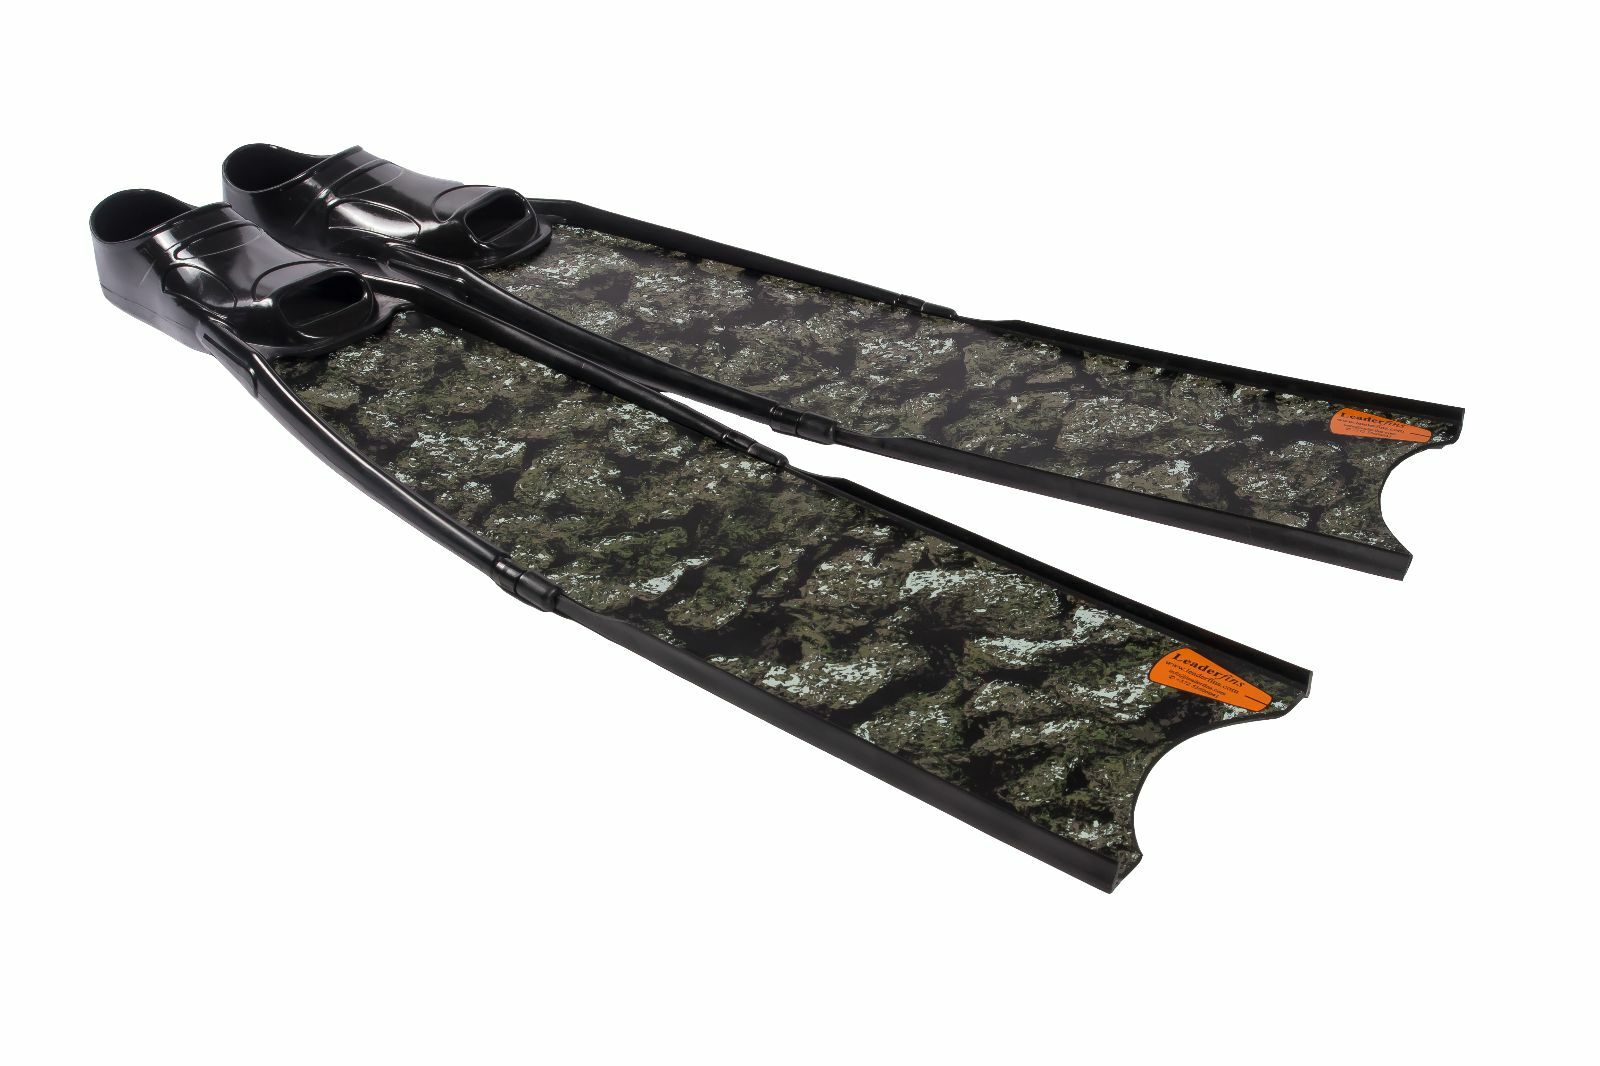 Leaderfins Neo Carbon Freediving and Spearfishing Stereofins